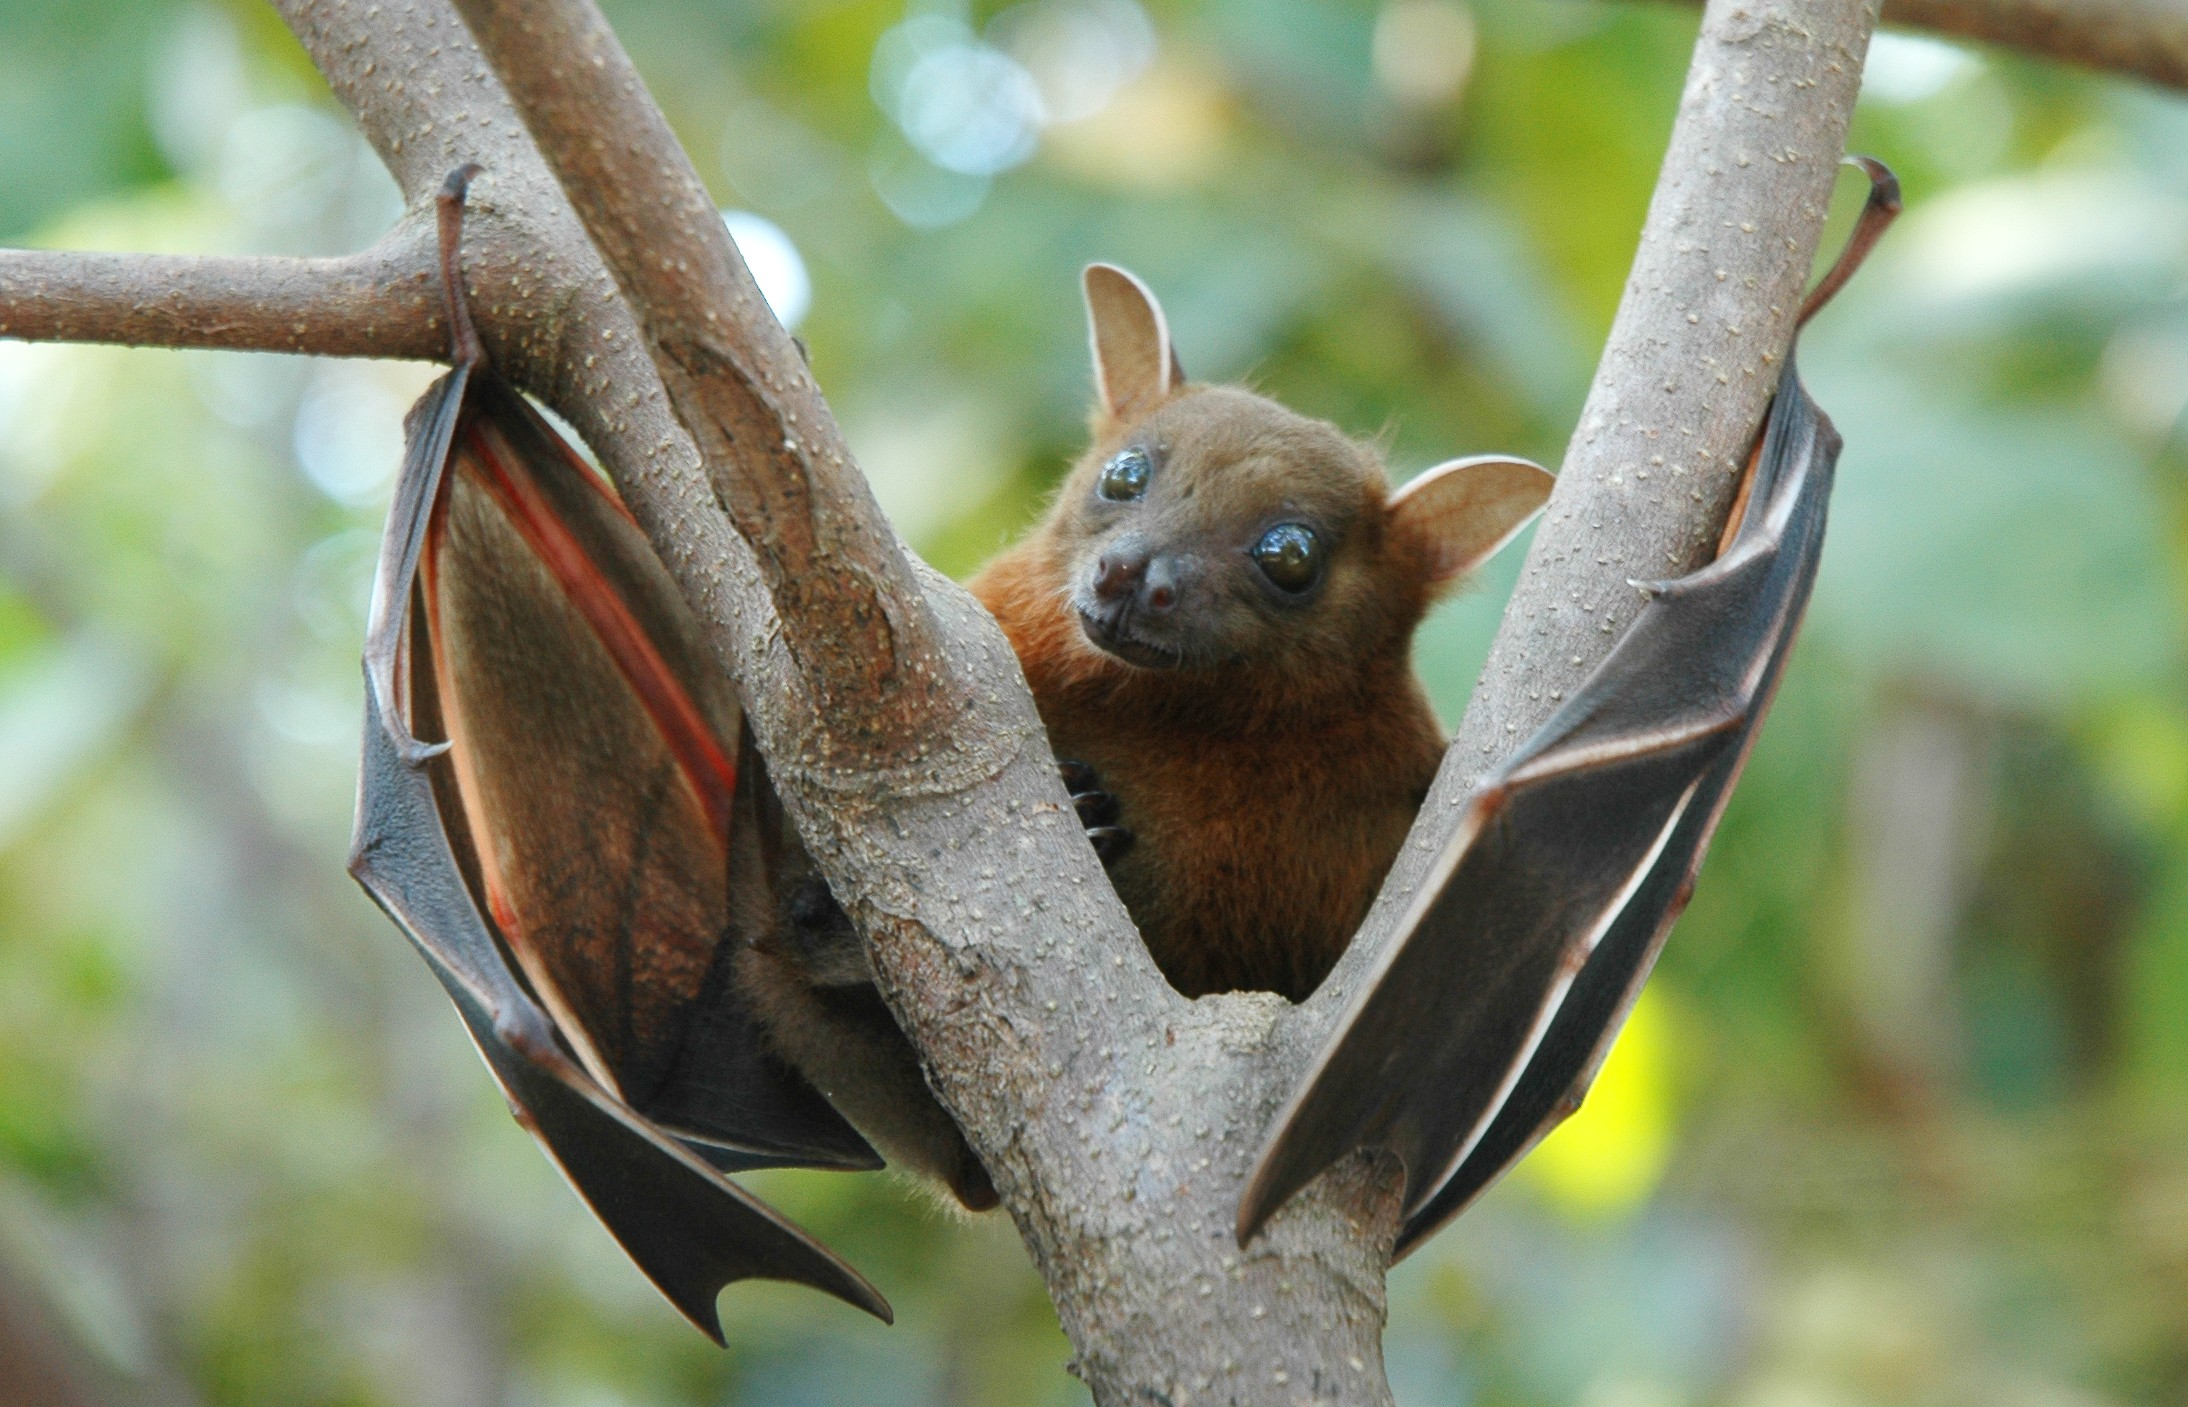 1504521374Lesser_shortnosed_fruit_bat_Cynopterus_brachyotis.jpg